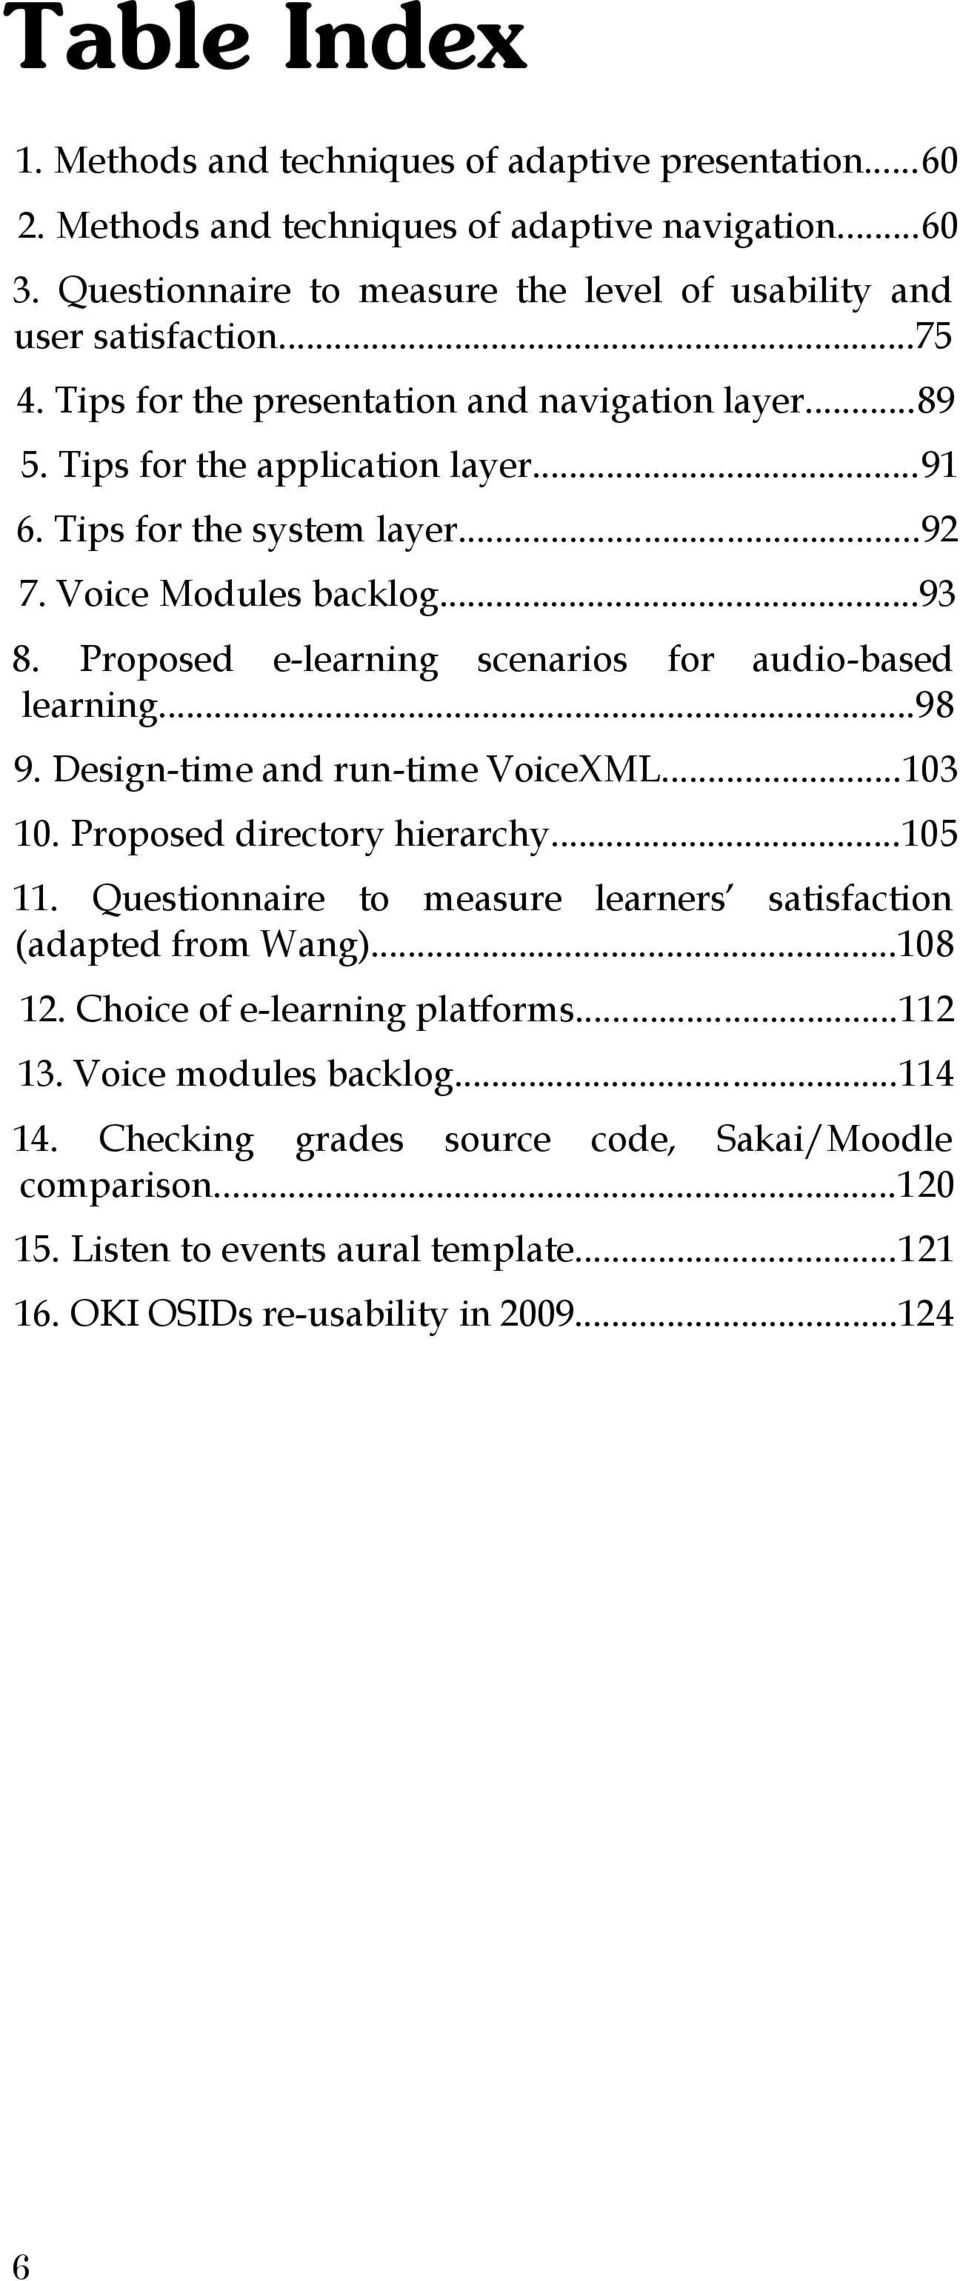 Proposed e-learning scenarios for audio-based learning...98 9. Design-time and run-time VoiceXML...103 10. Proposed directory hierarchy...105 11.